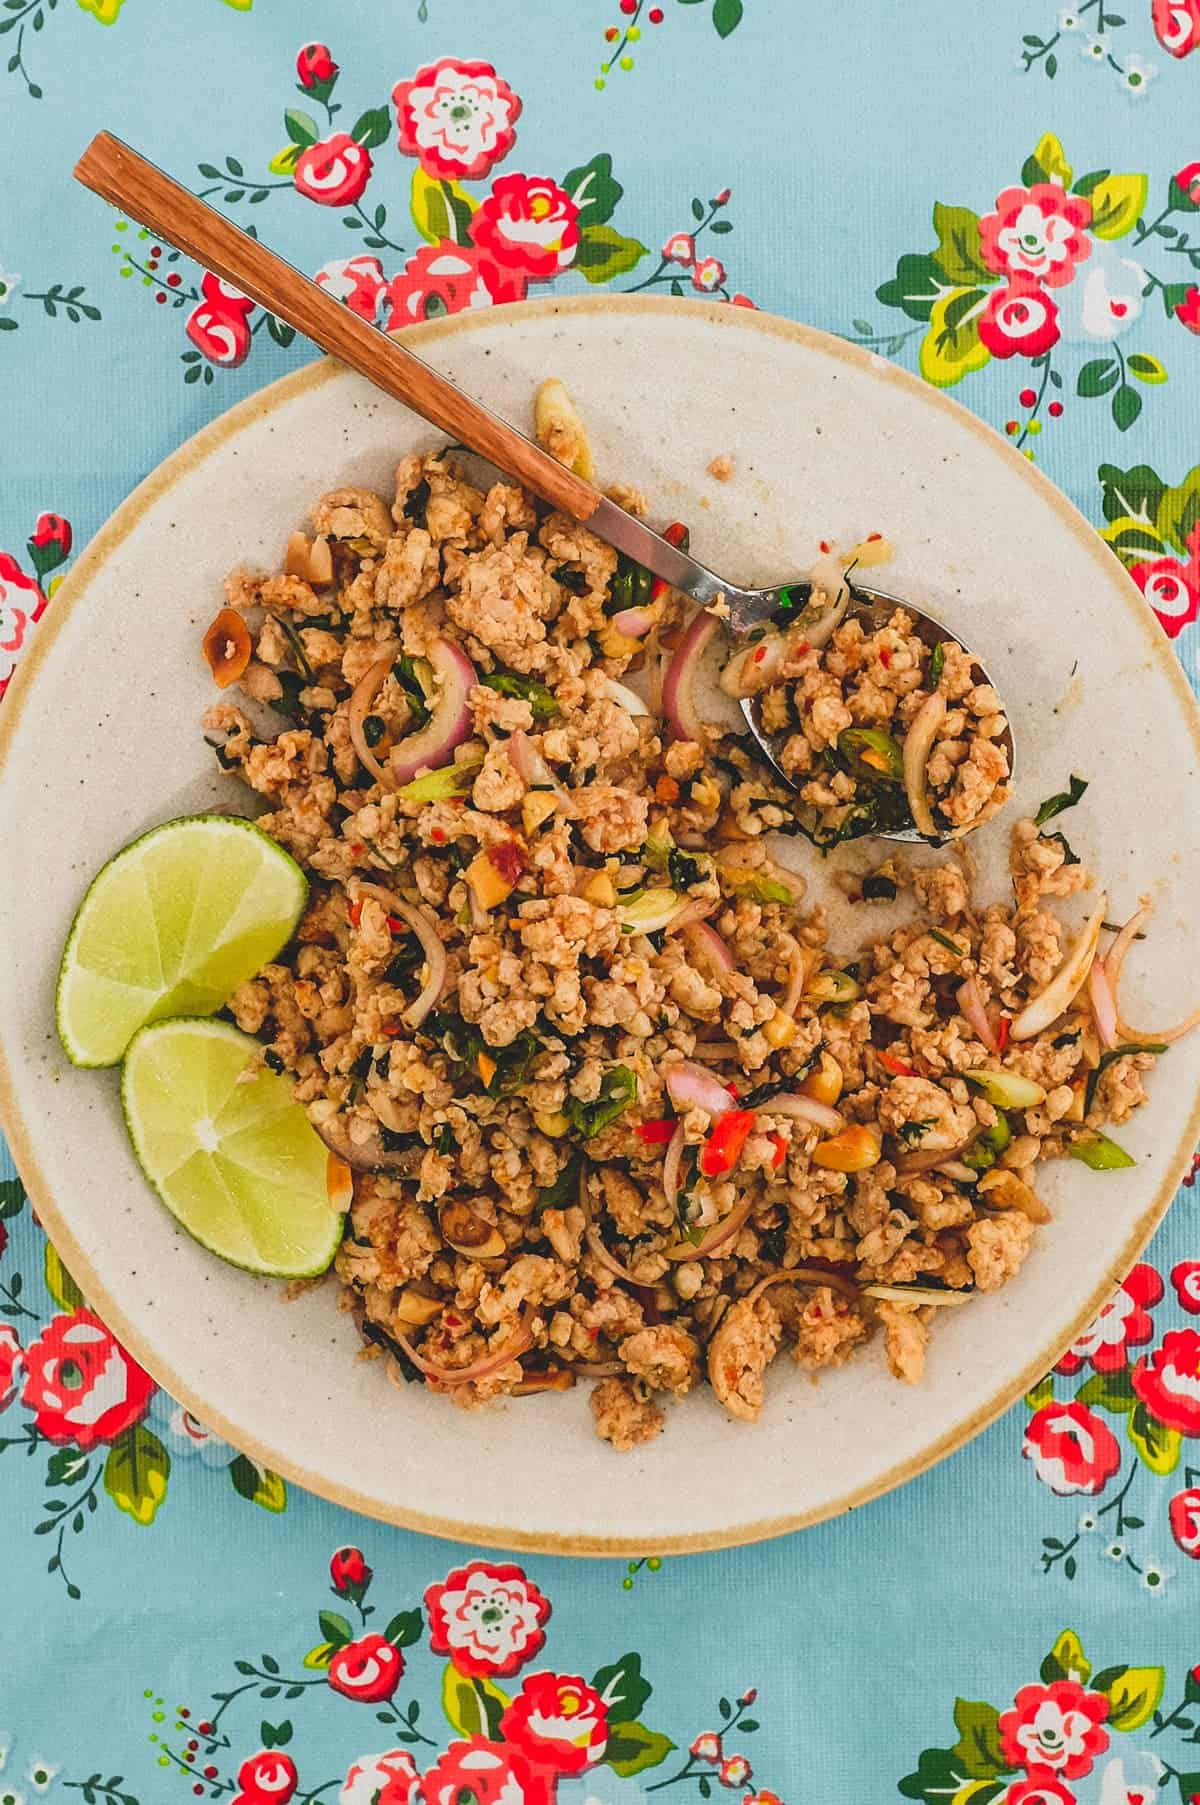 Ground chicken combined with Laotian aromatics and spices to a form a dry, spicy chicken salad. The platter sits on a colourful, floral tablecloth - like the kind you find in South East Asian markets.